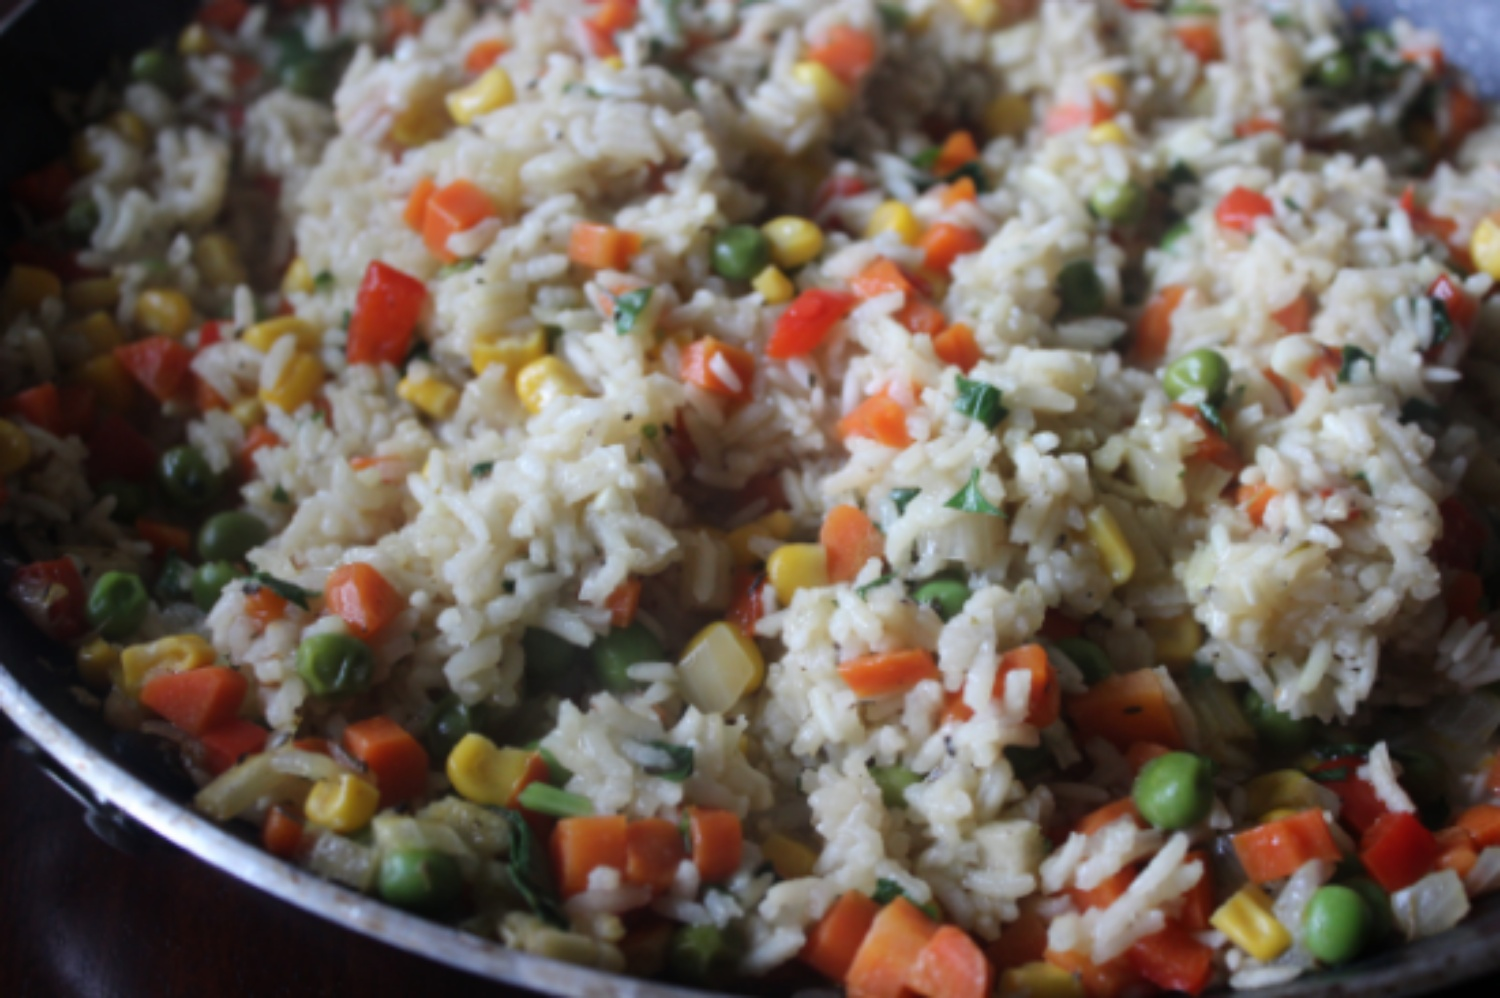 Awesome Rice Pilaf mommyluvs2cook